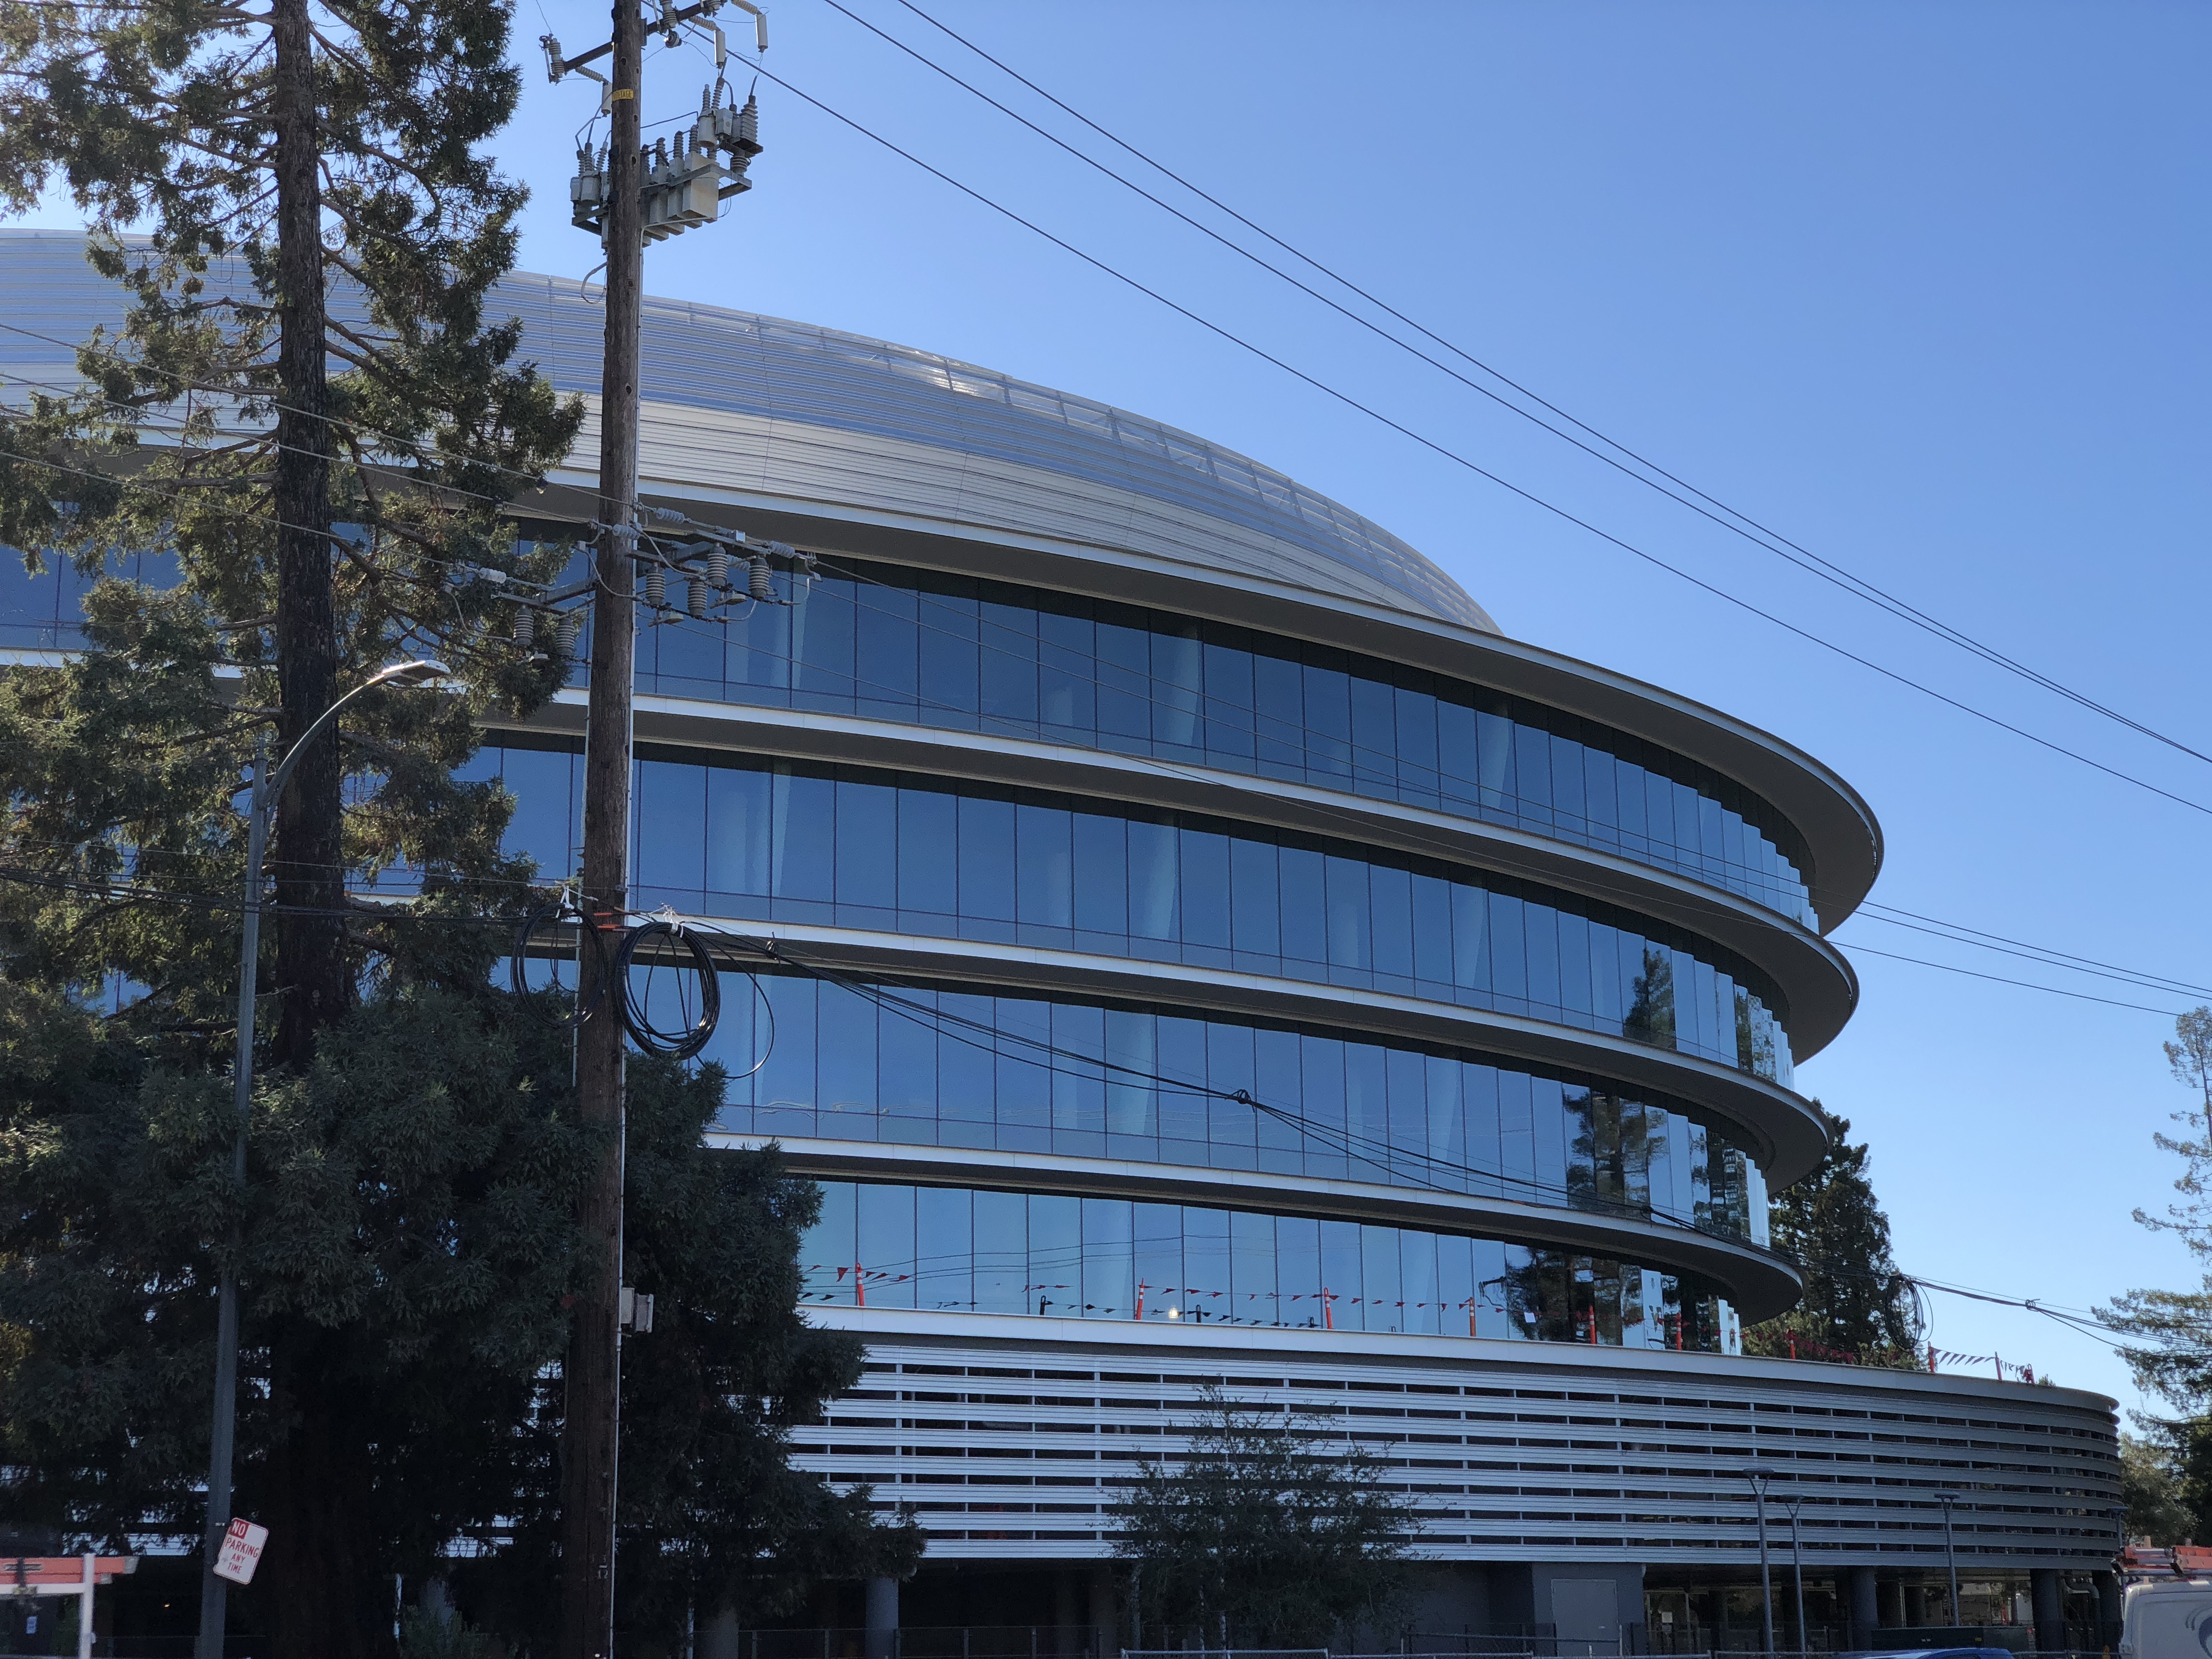 Construction of Apple's stunning 'second spaceship' campus